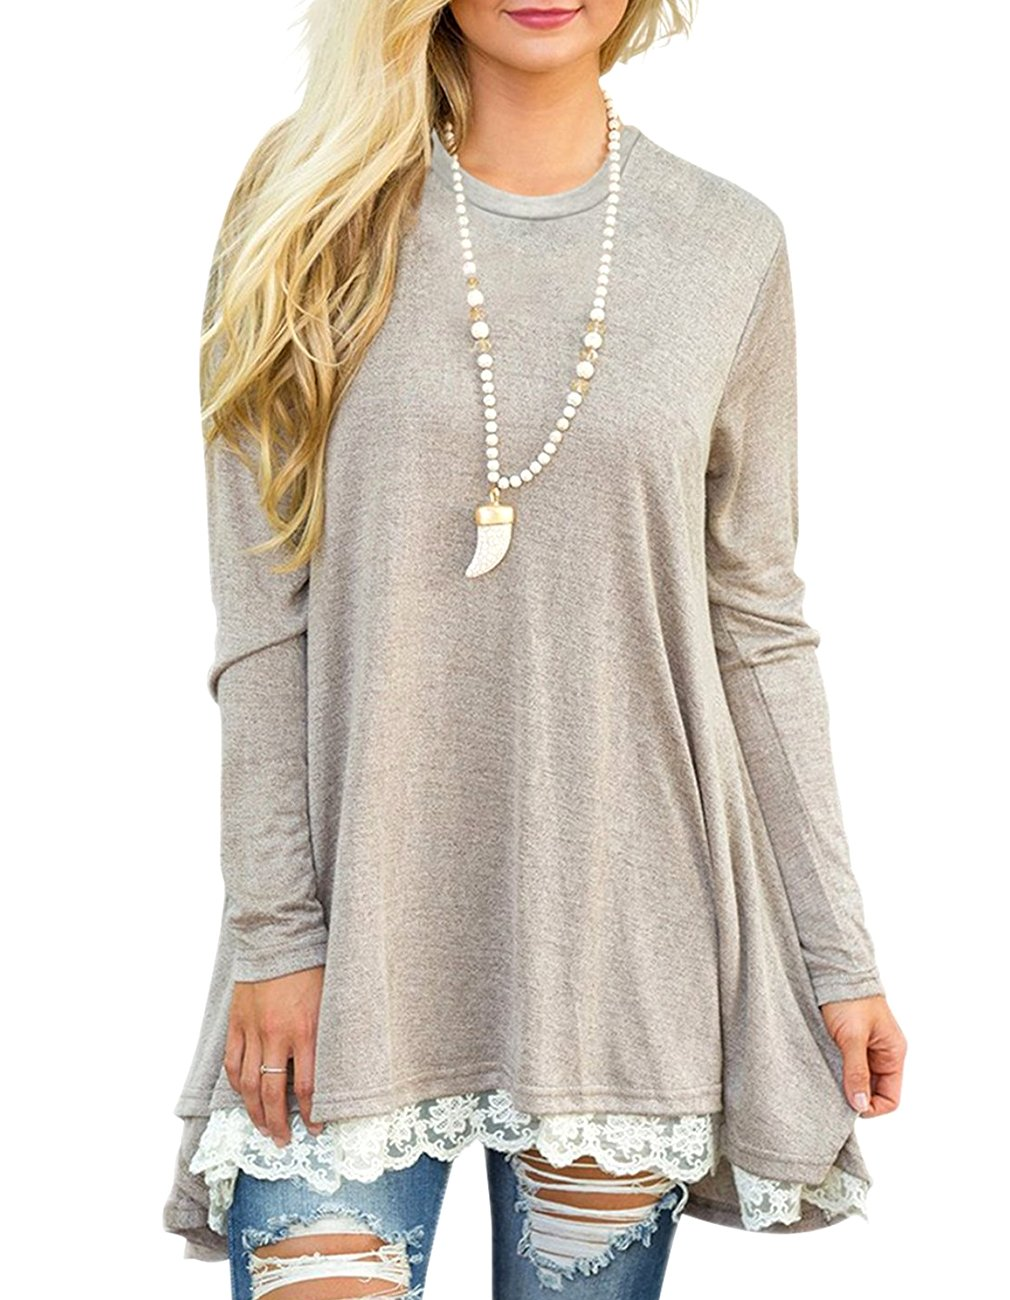 Miskely Women's Long Sleeve Lace Tunic Tops Round Neck Loose Blouse Casual Swing Cotton T-Shirt for Leggings (L, Light Khaki)